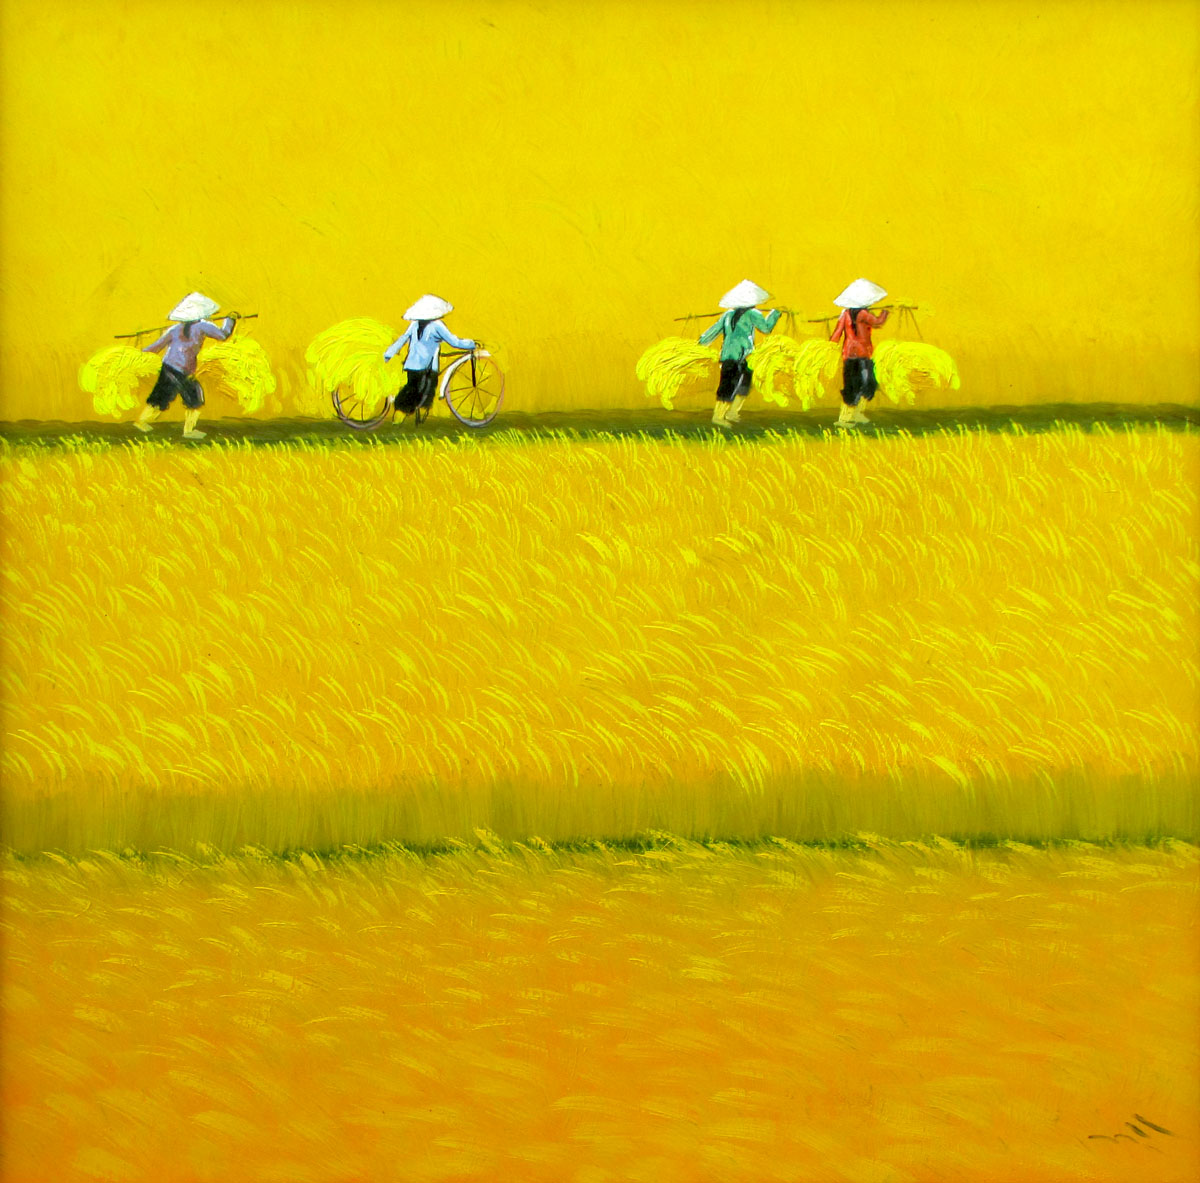 To Ngoc - Harvest season - 80x80cm